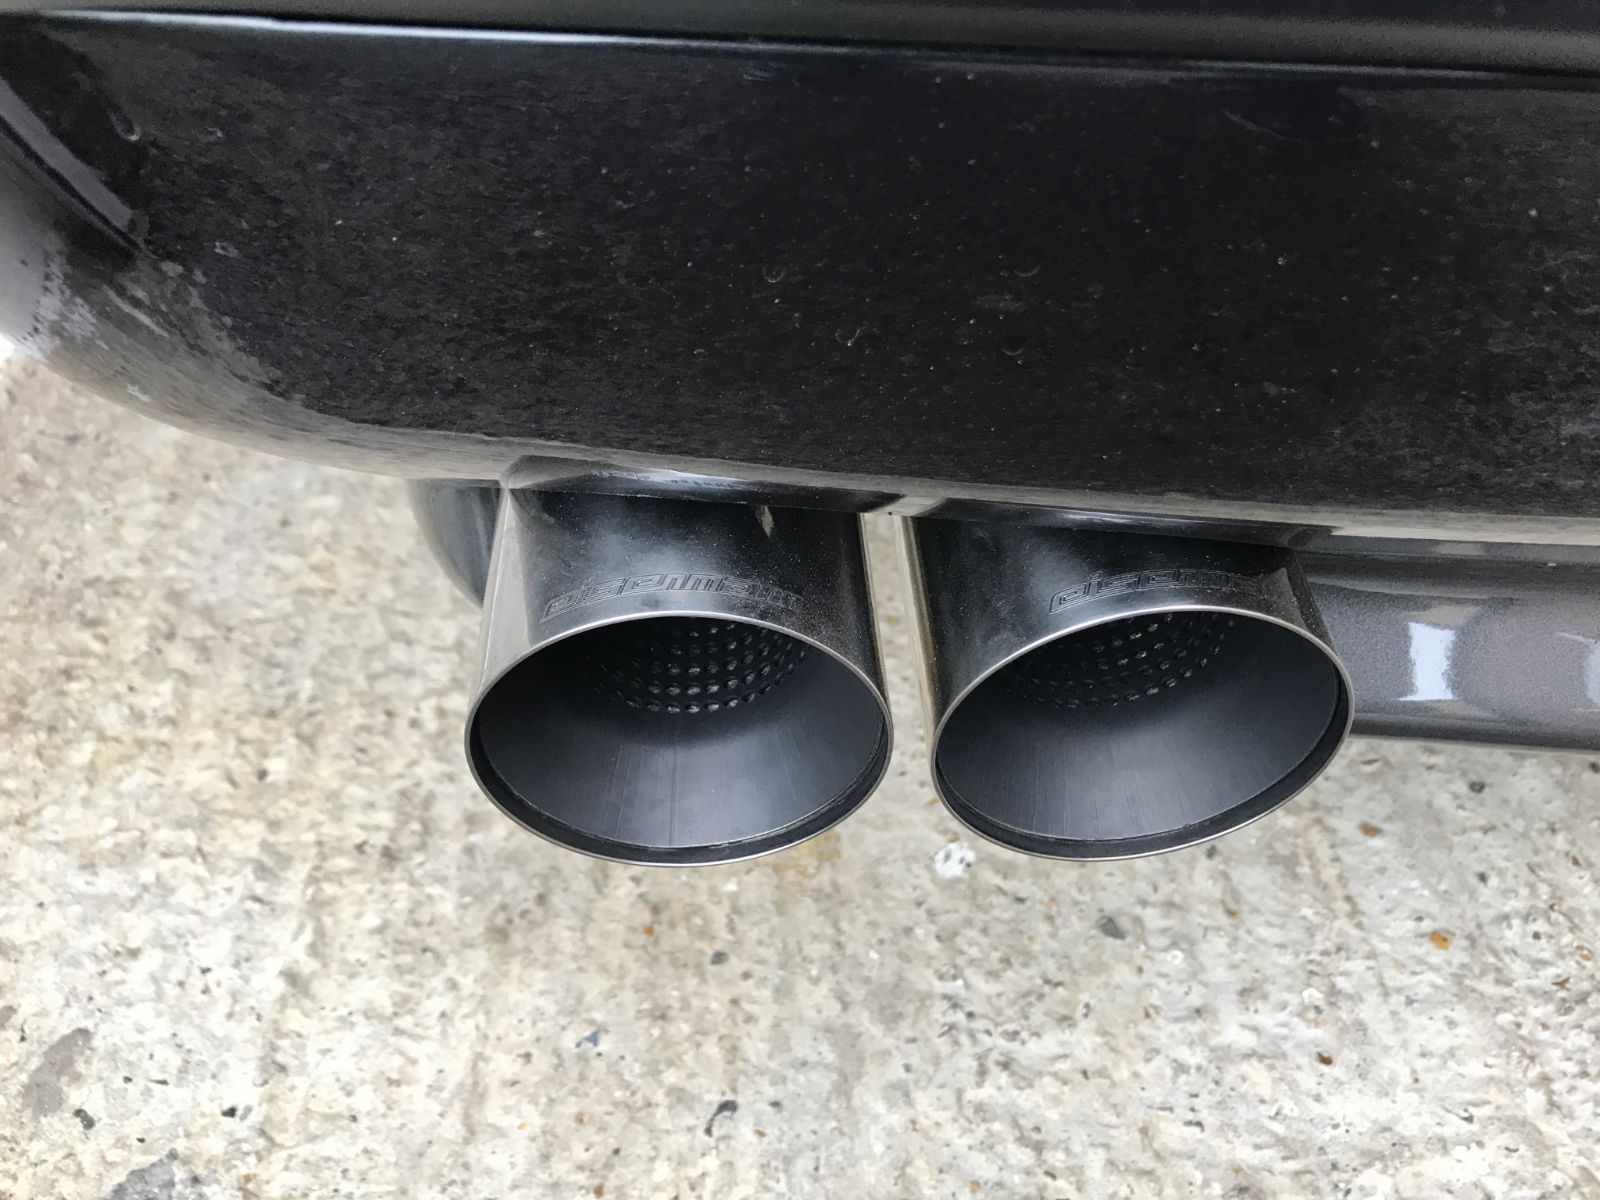 exhaust.jpeg